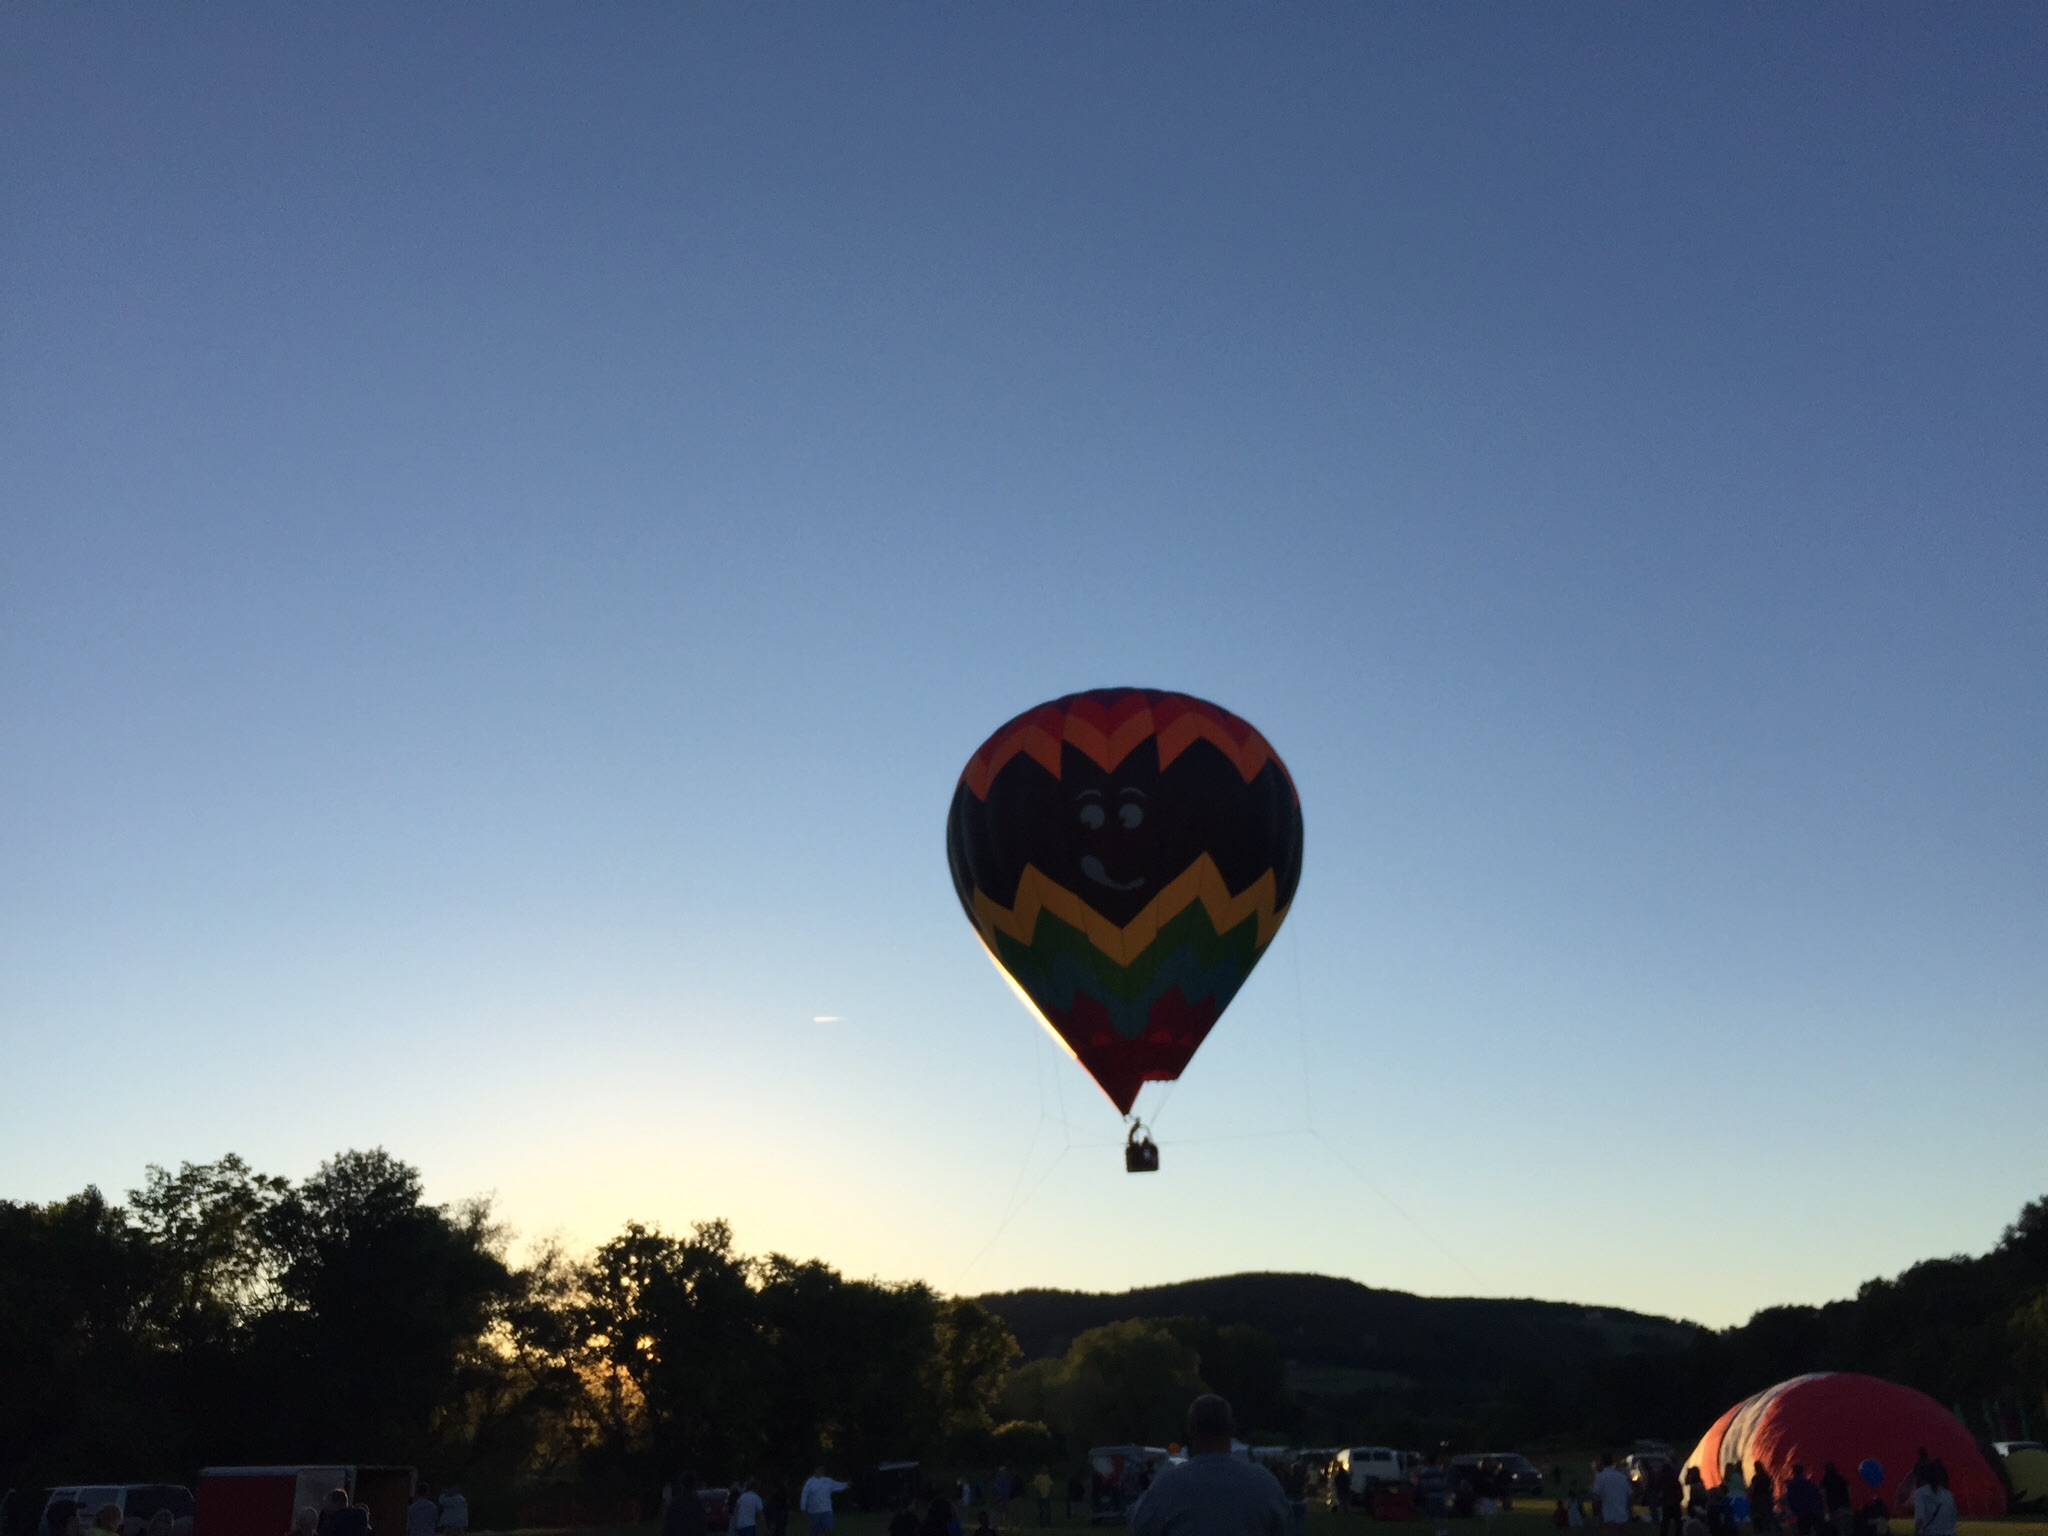 We were excited to find out an annual hot air balloon festival was being held one town over from where we stayed in VT. It was too windy for them to ascend untethered, but it was still pretty cool!